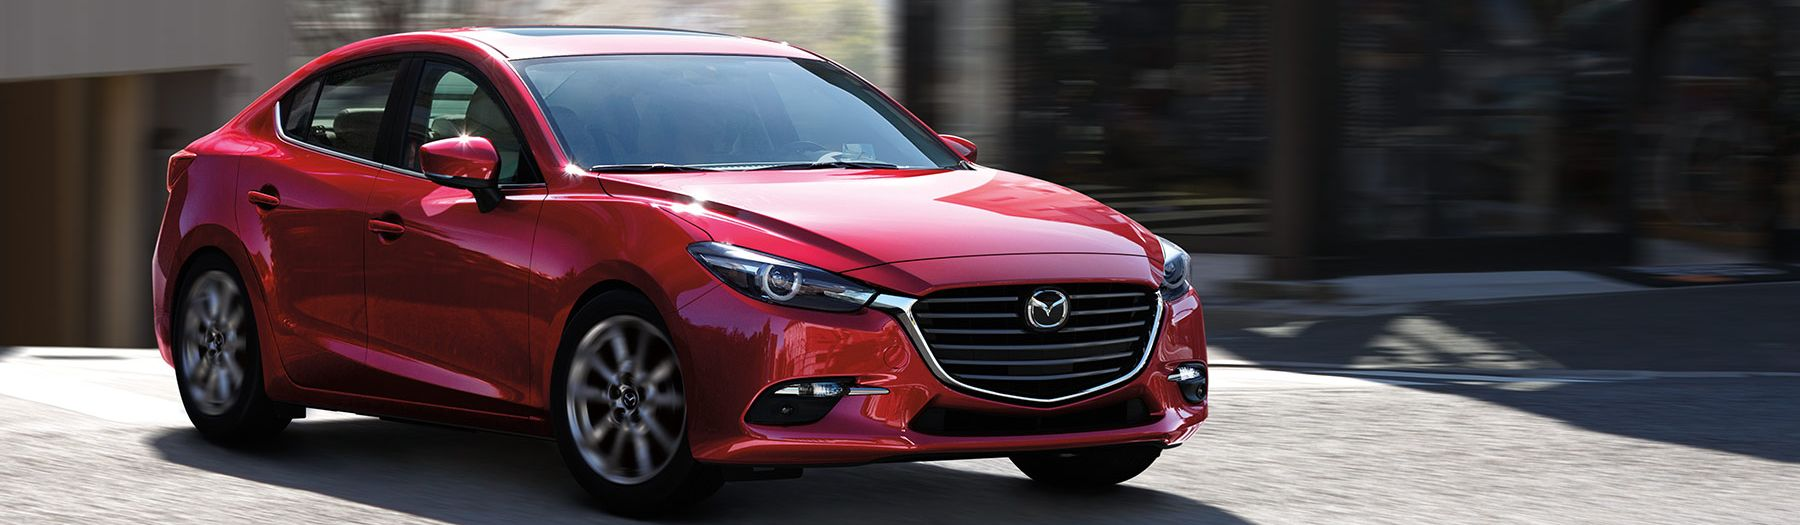 Mazda 3 Owners Manual: Customer Information and Reporting Safety Defects